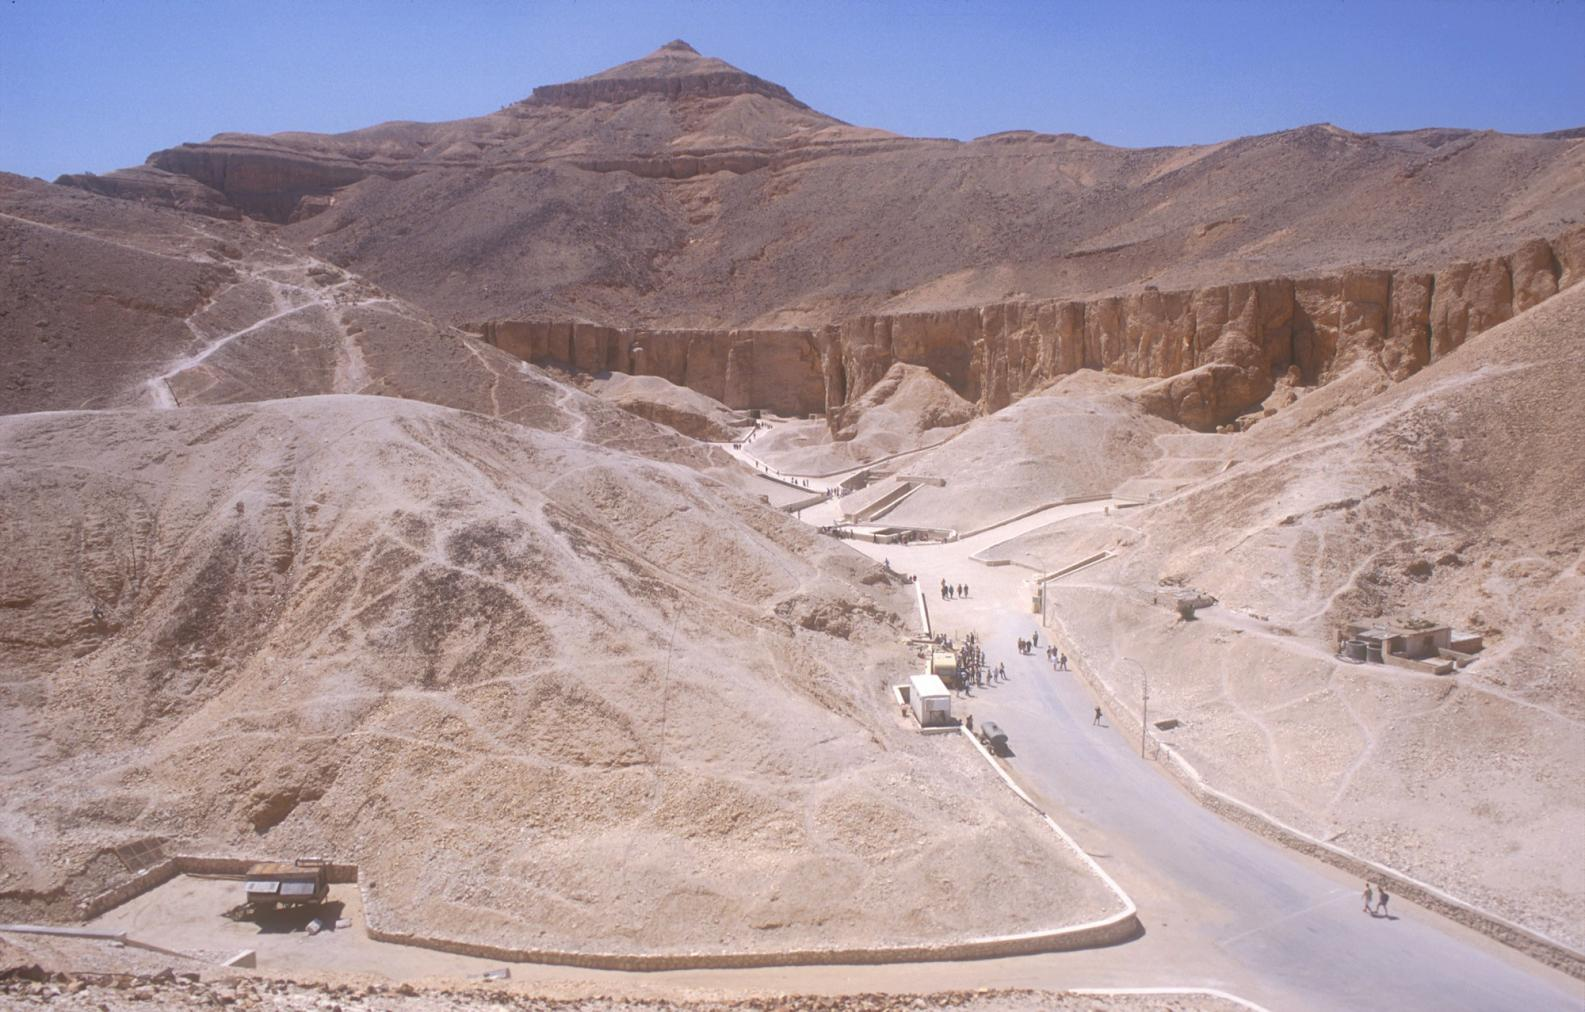 Valley of the Kings with pyramid-shaped Qurn above.